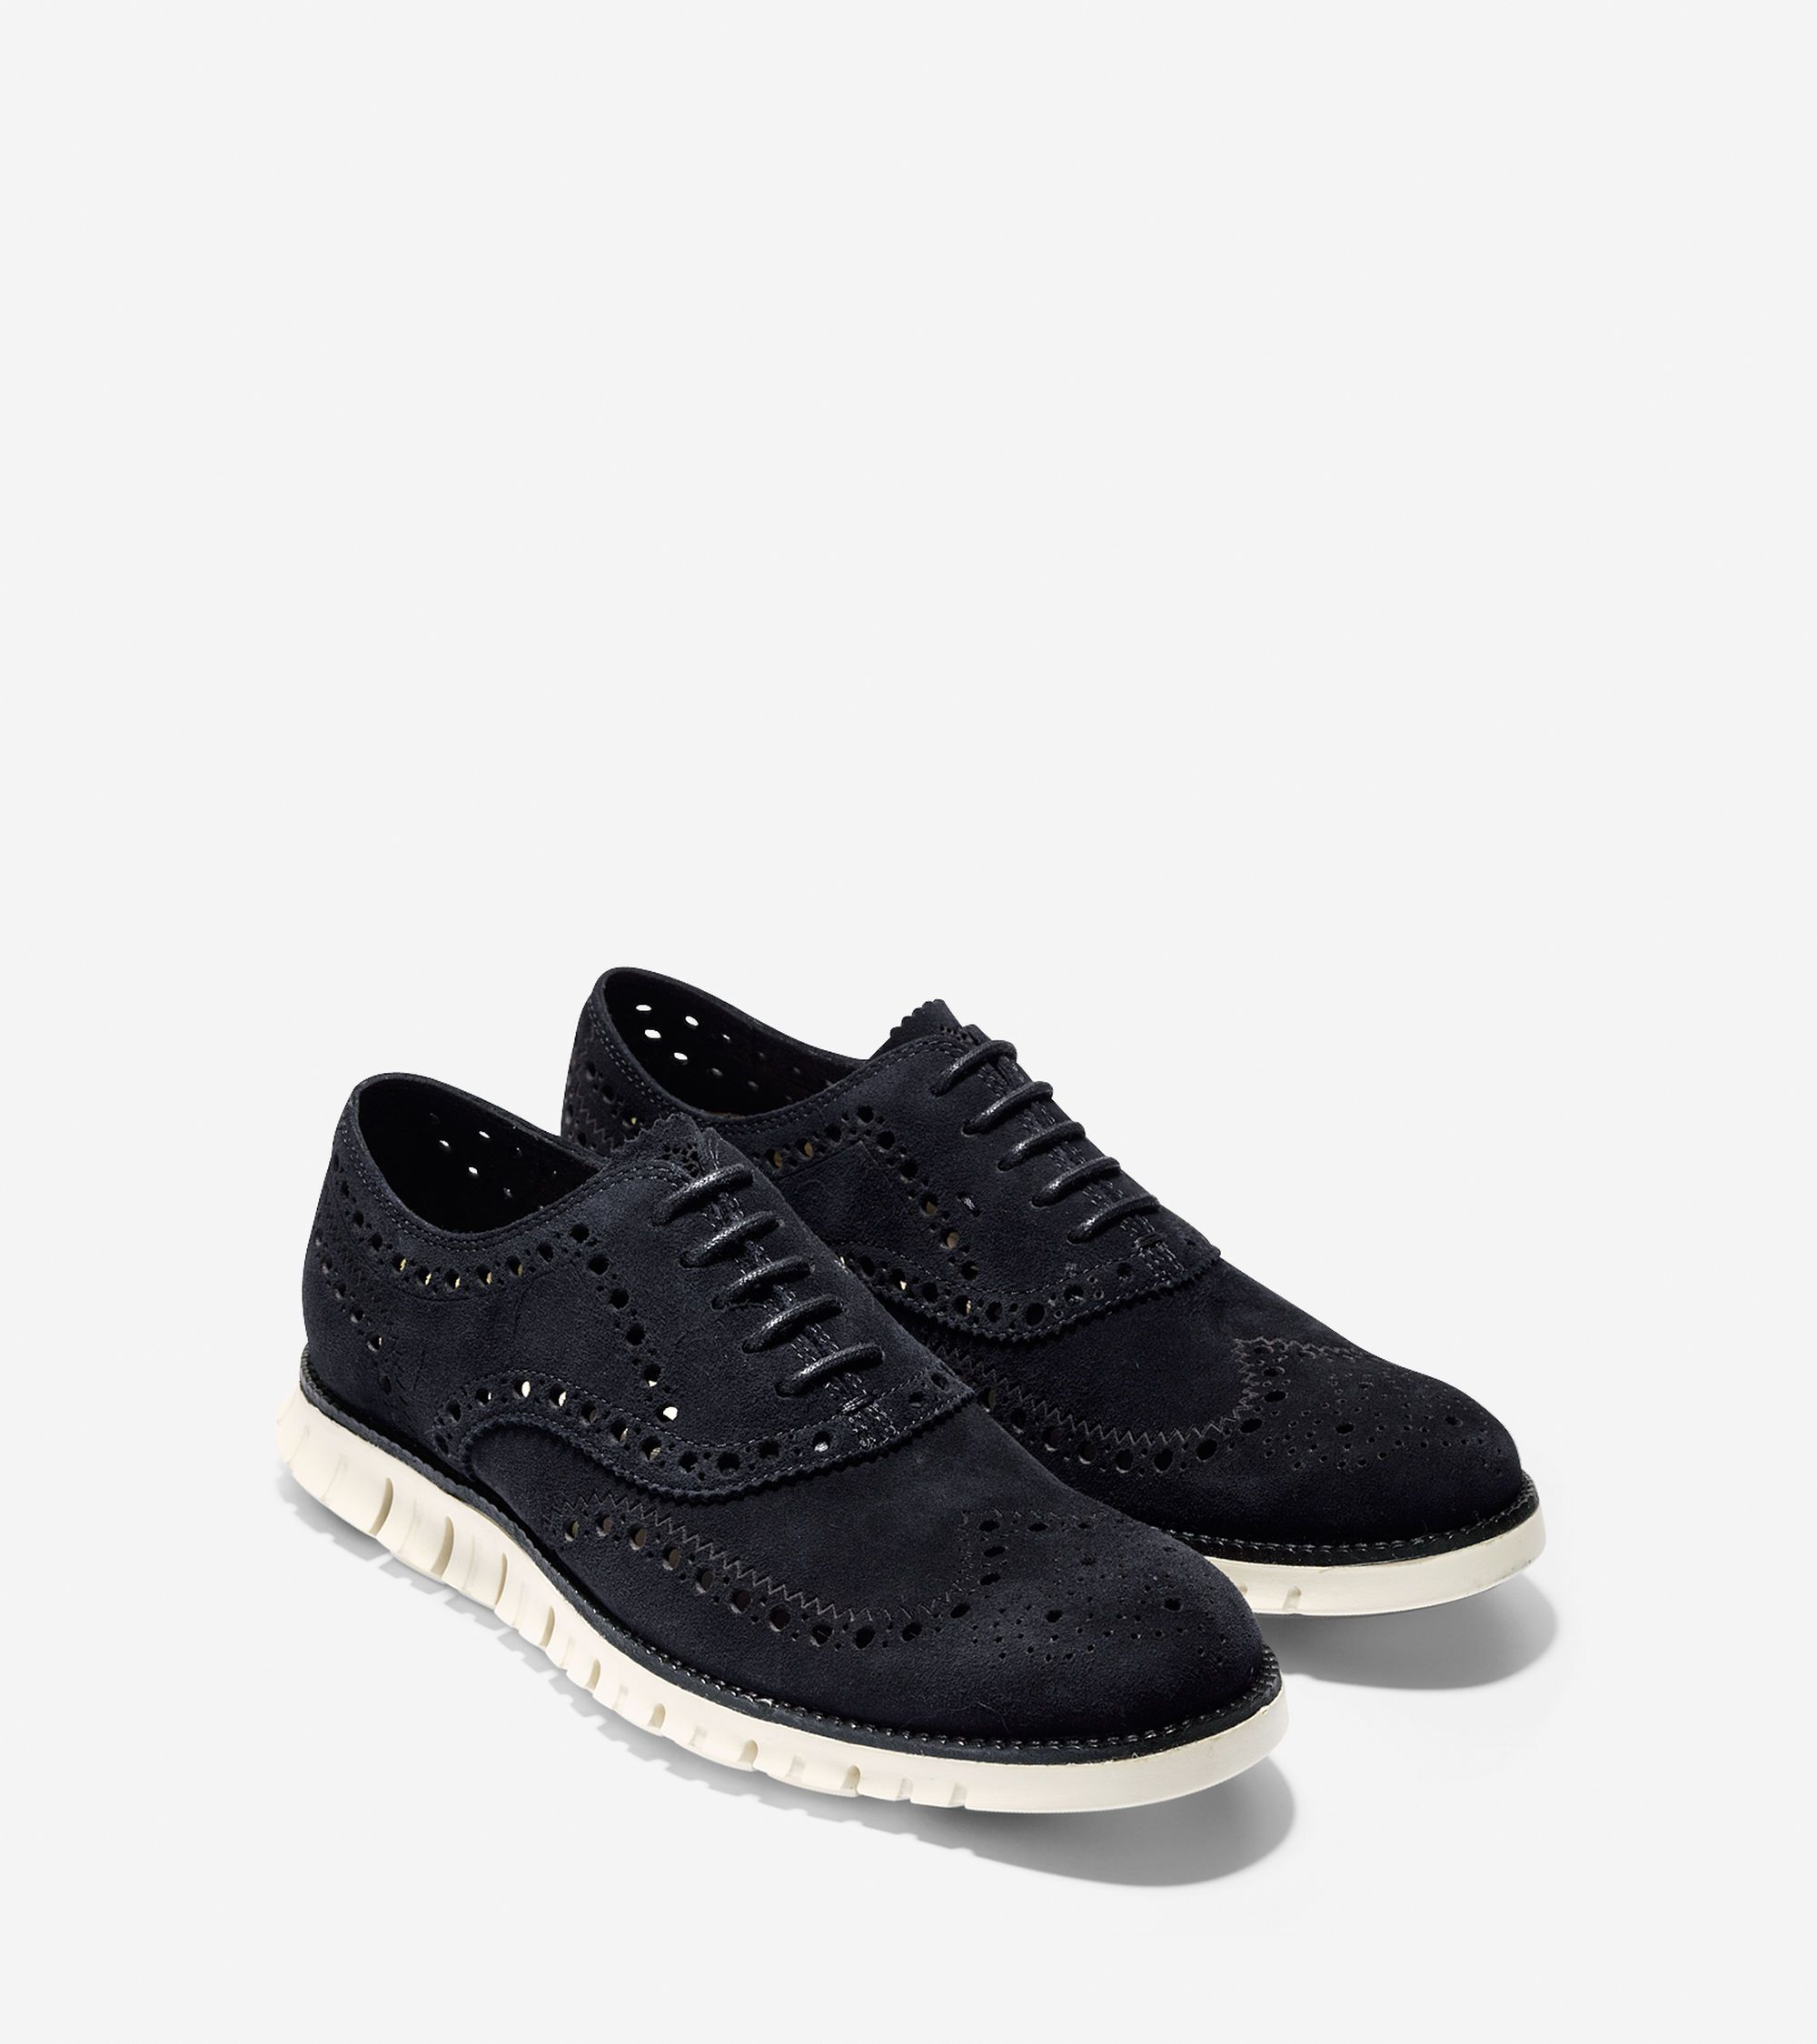 Cole Haan Changes the Game Once Again With Its Super Lightweight ZeroGrand  Dress Shoe